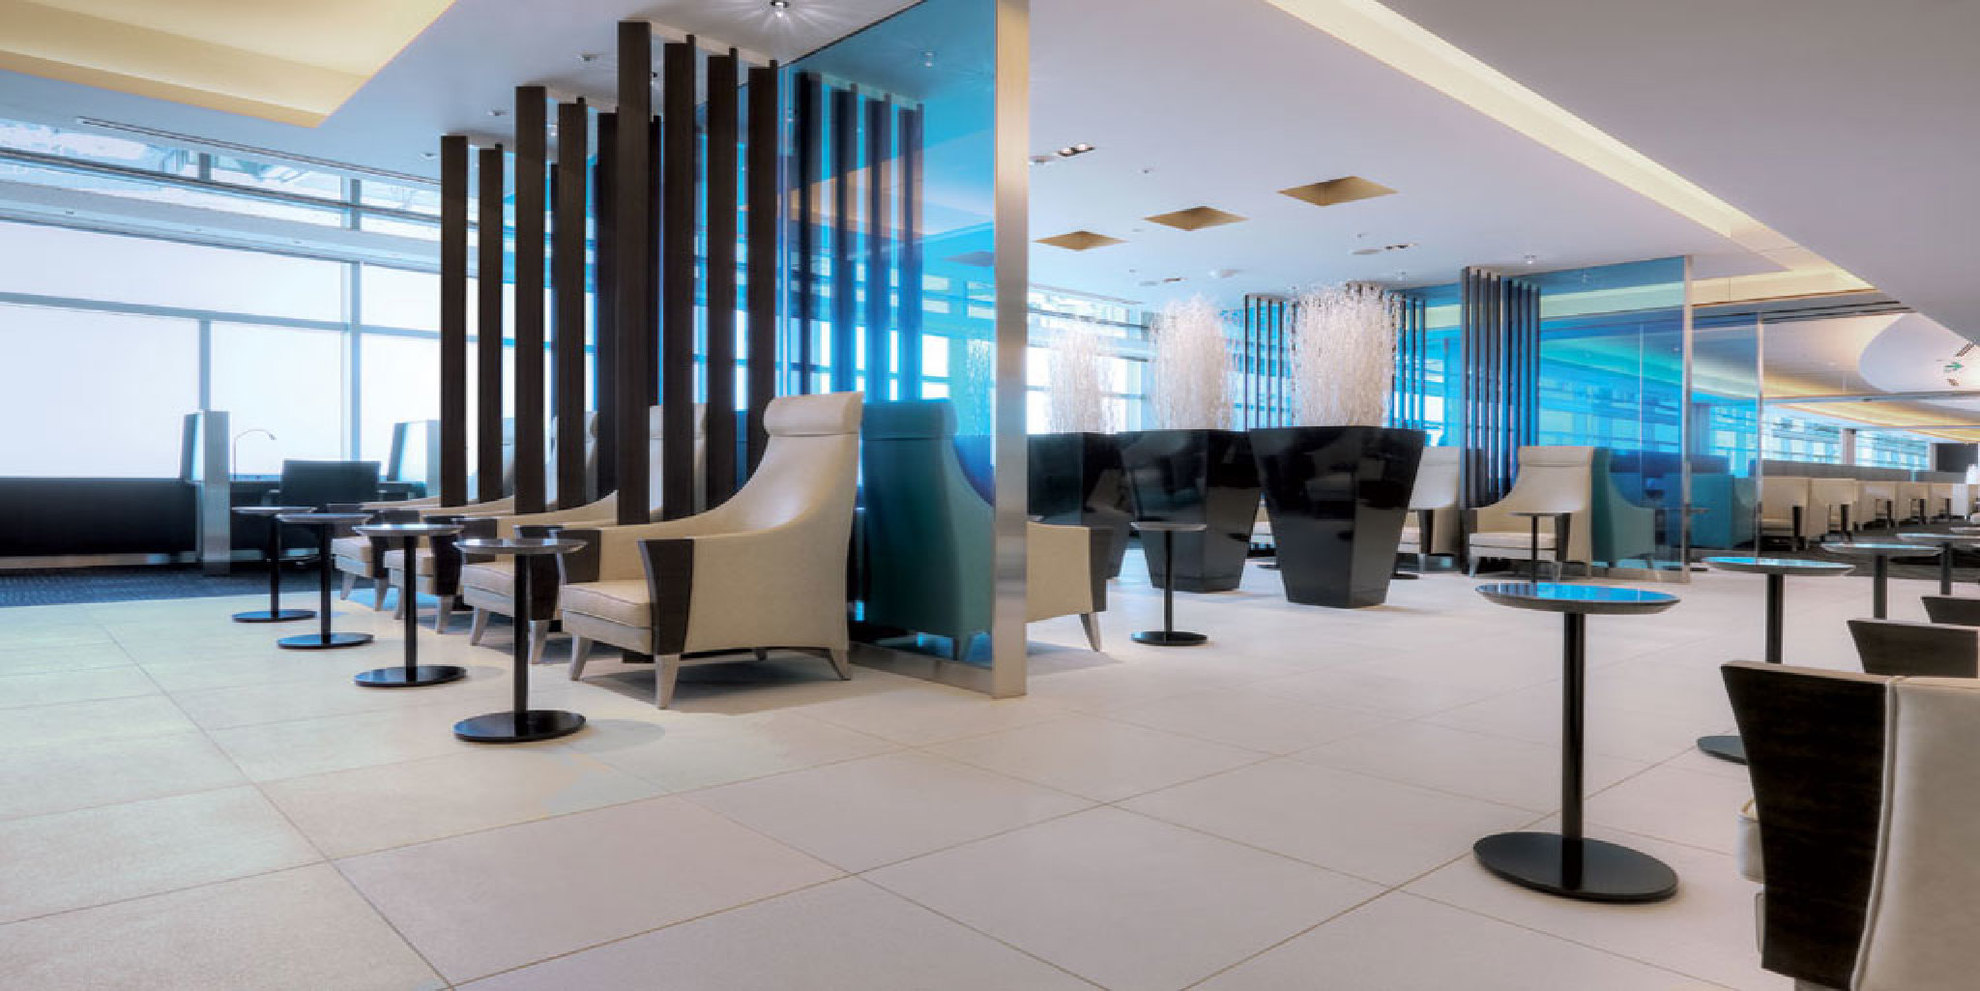 Floor and wall coverings for high traffic areas | Floornature